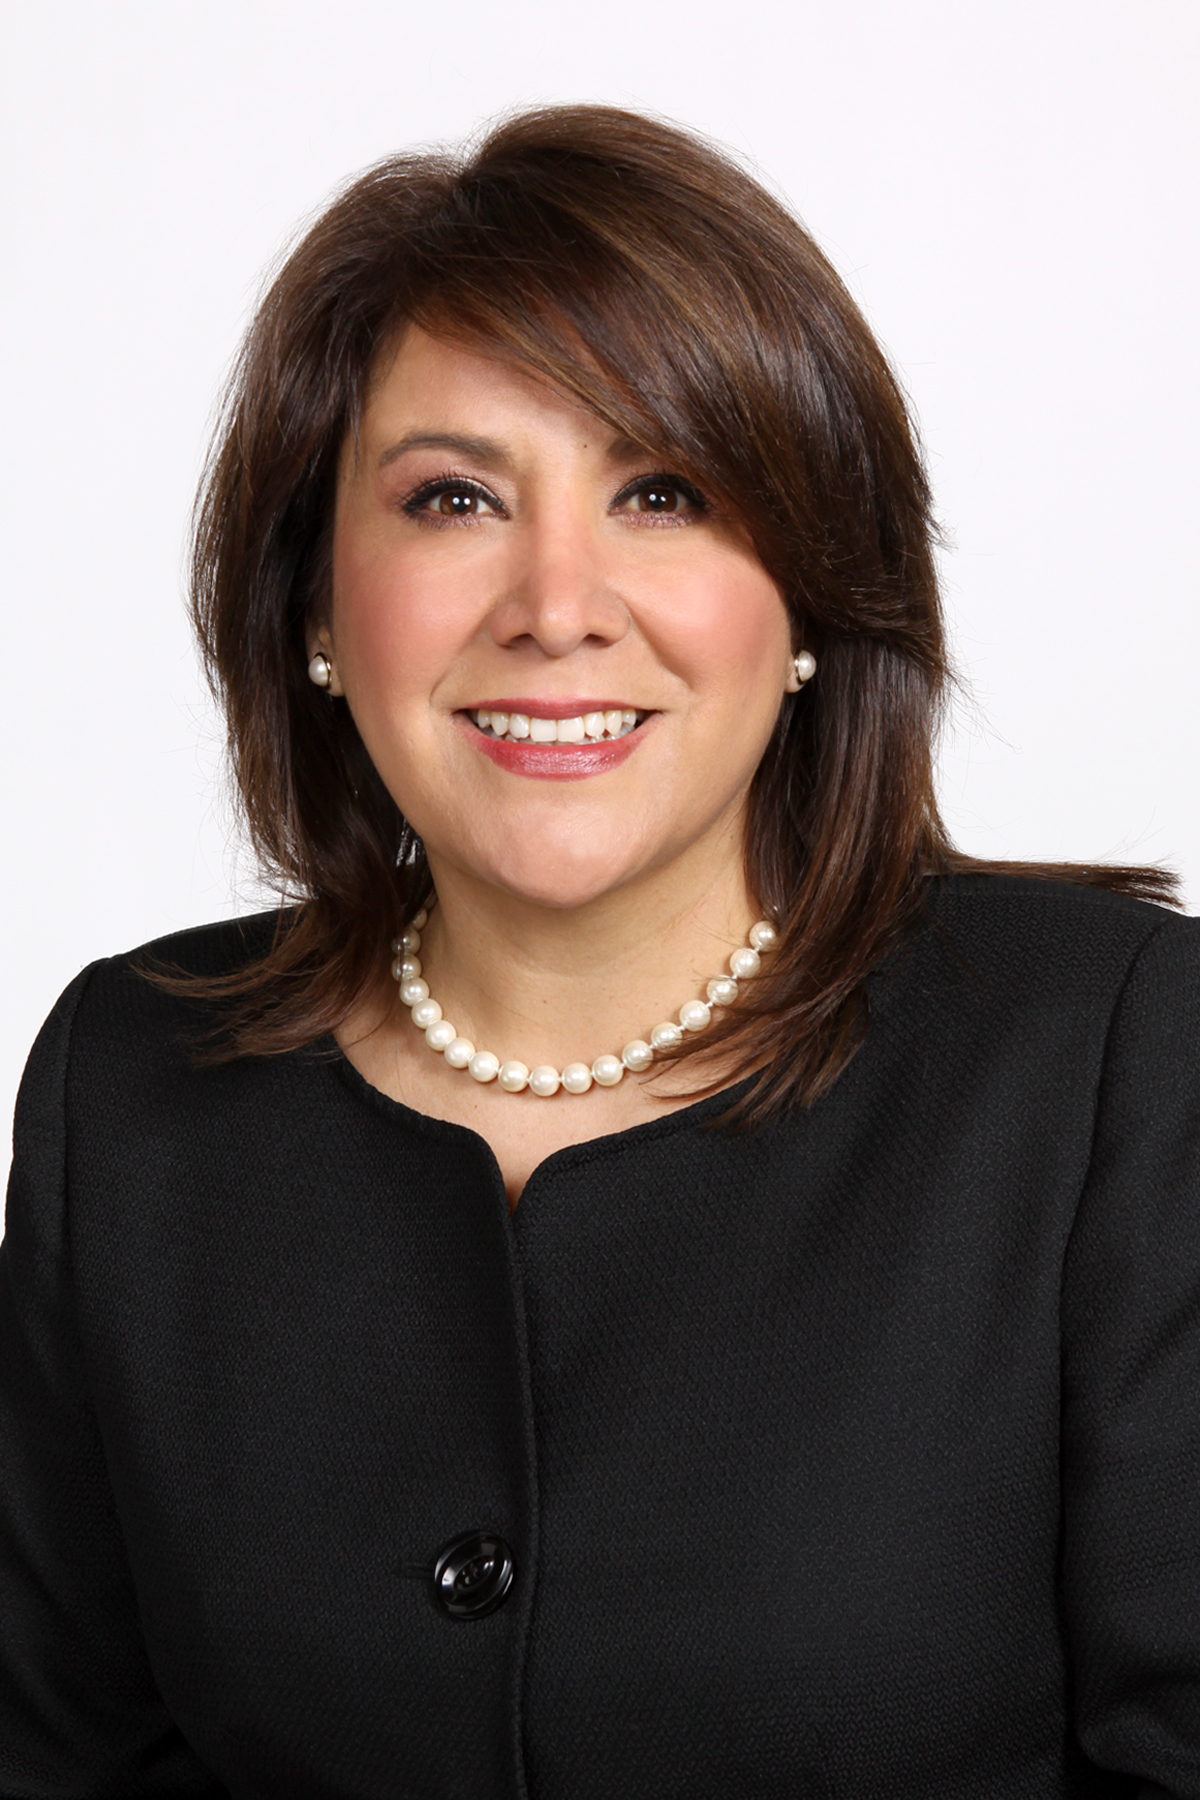 Photo of YWCA El Paso CEO in black top, pearl necklace, and pearl earrings